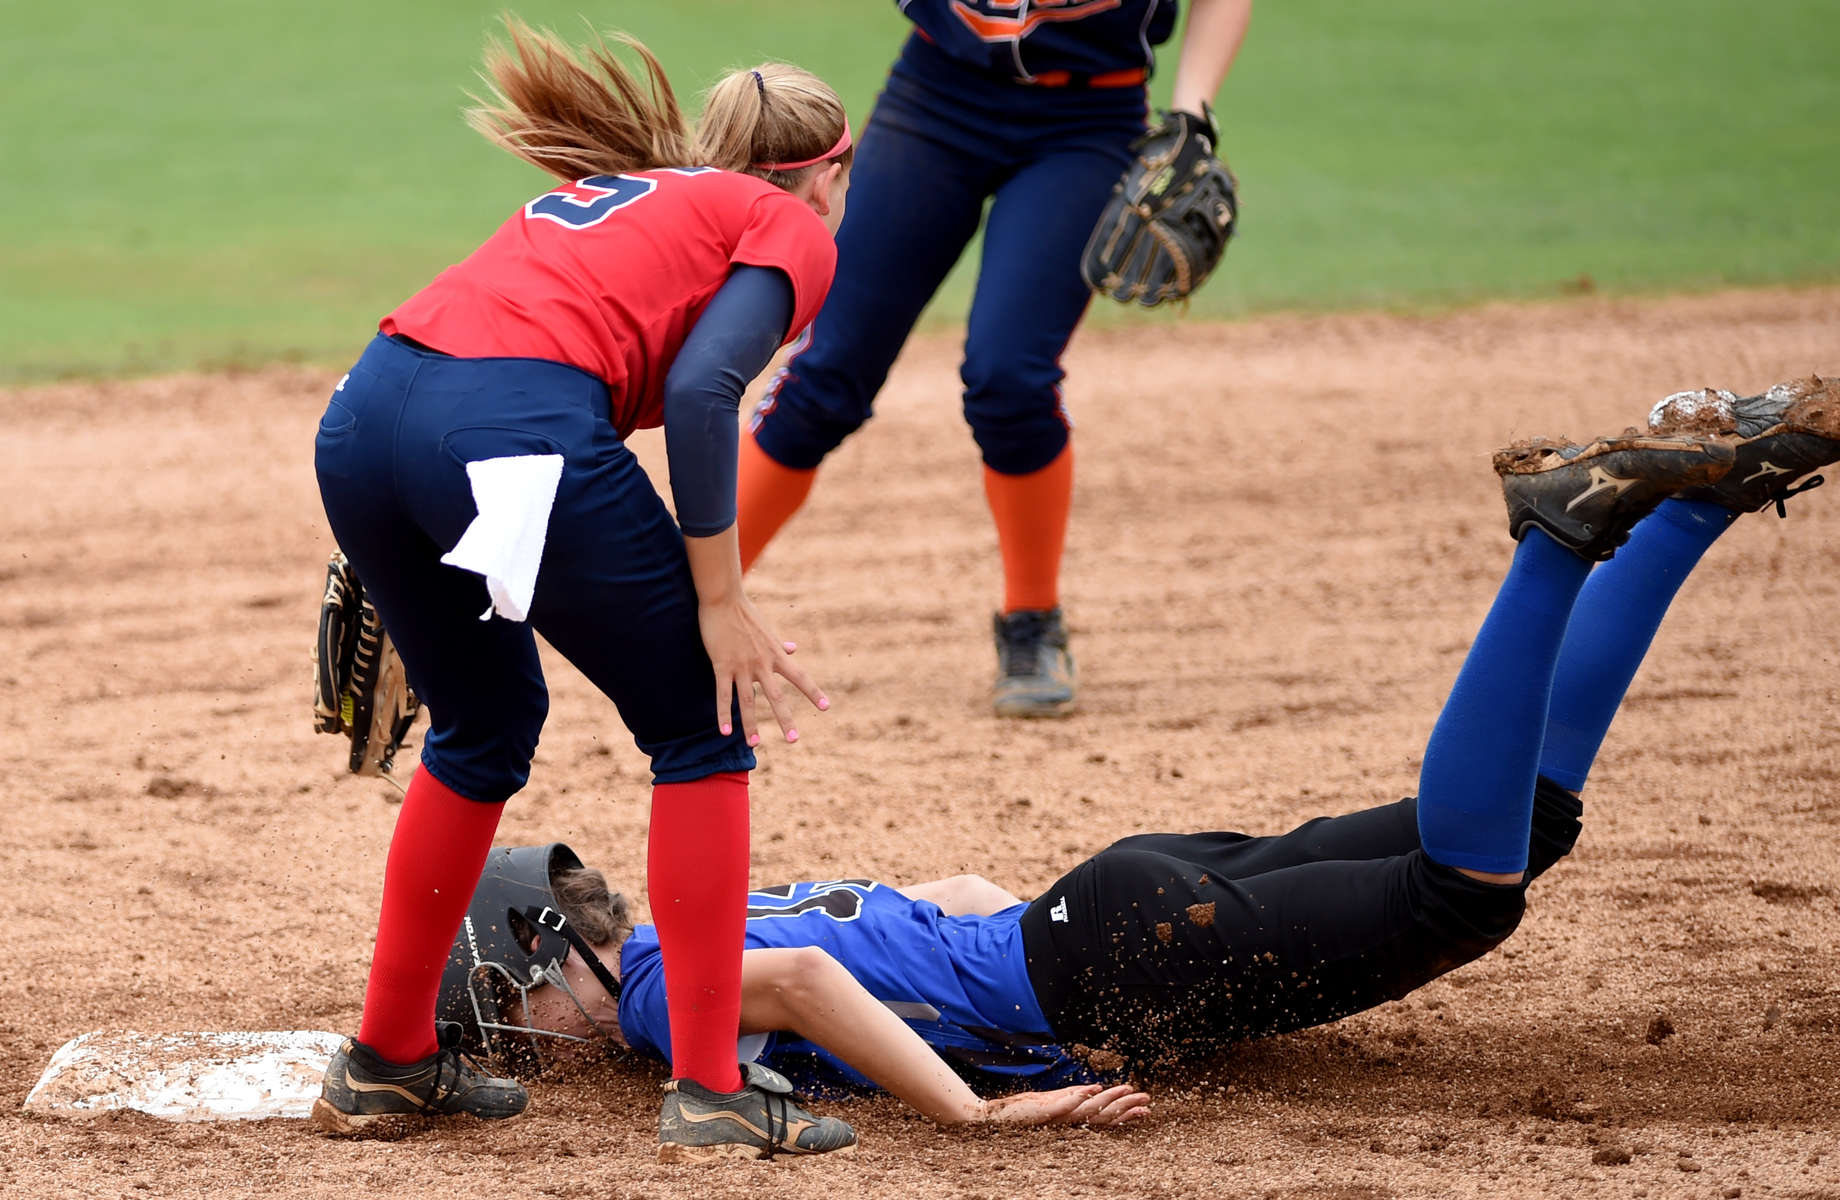 West's Lia Batchelor (York) slides in to second base head-first during the VHSCA all-star softball game Thursday morning at Liberty University in Lynchburg. (Max Oden / The News & Advance)